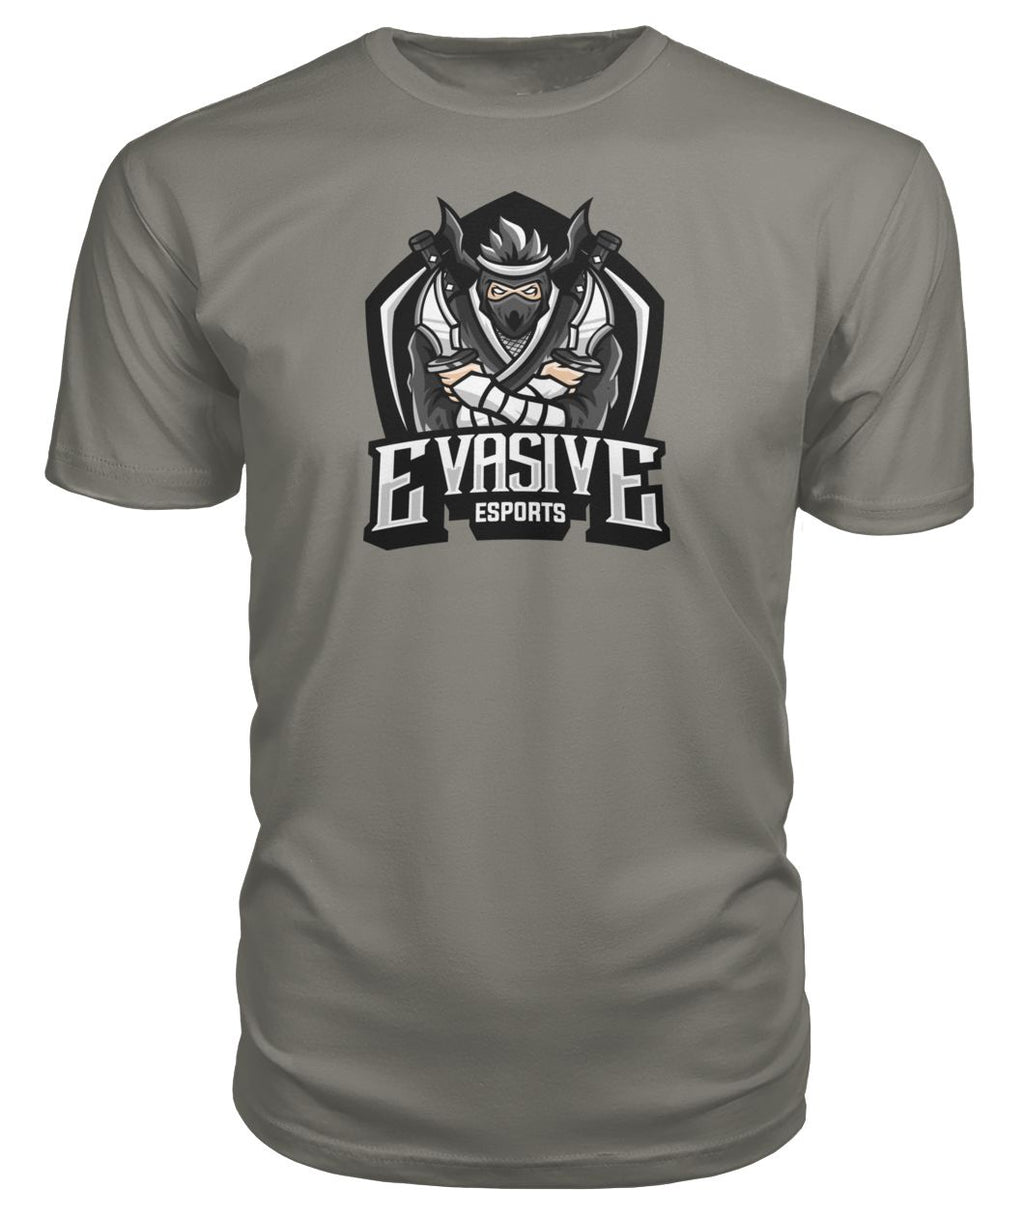 Evasive Esports Mascot Tee (3 Color Options)